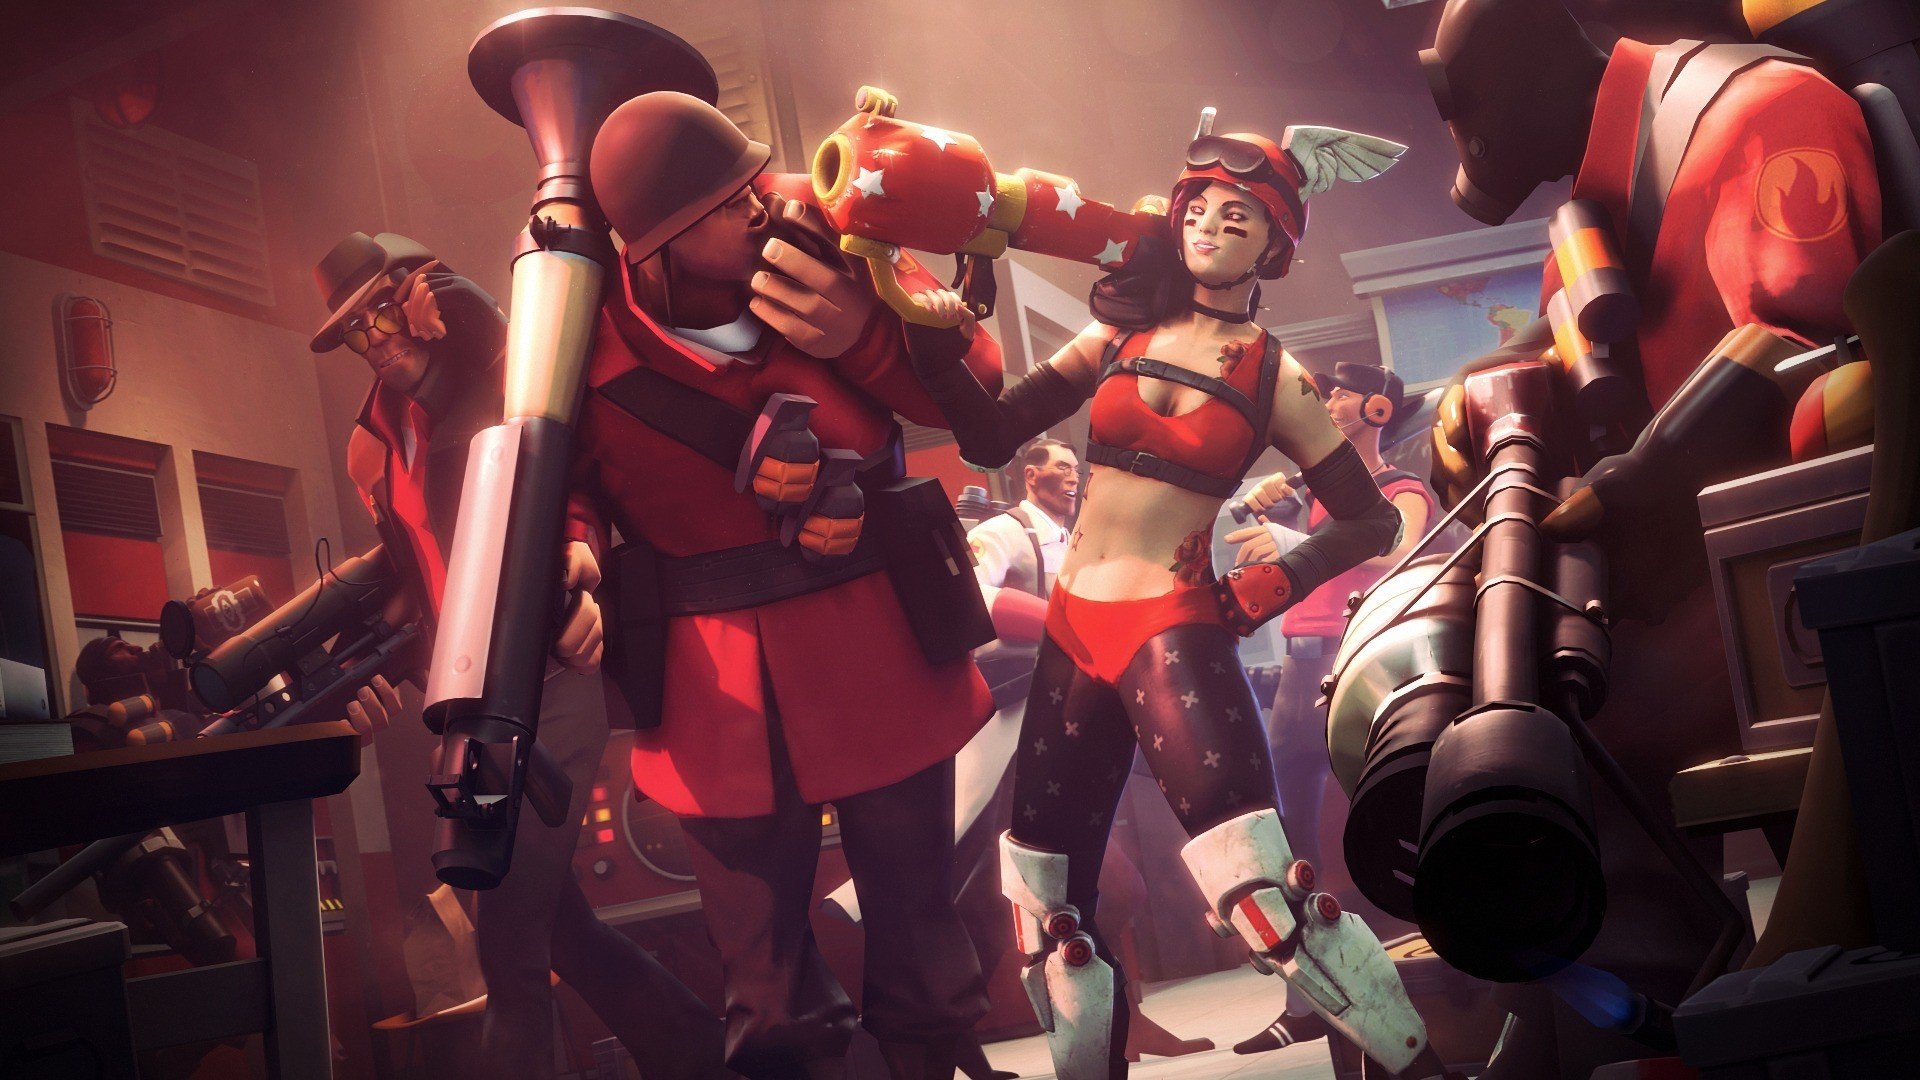 video Games Team Fortress Wallpapers HD Desktop and Mobile   HD Wallpapers    Pinterest   Team fortress and Wallpaper